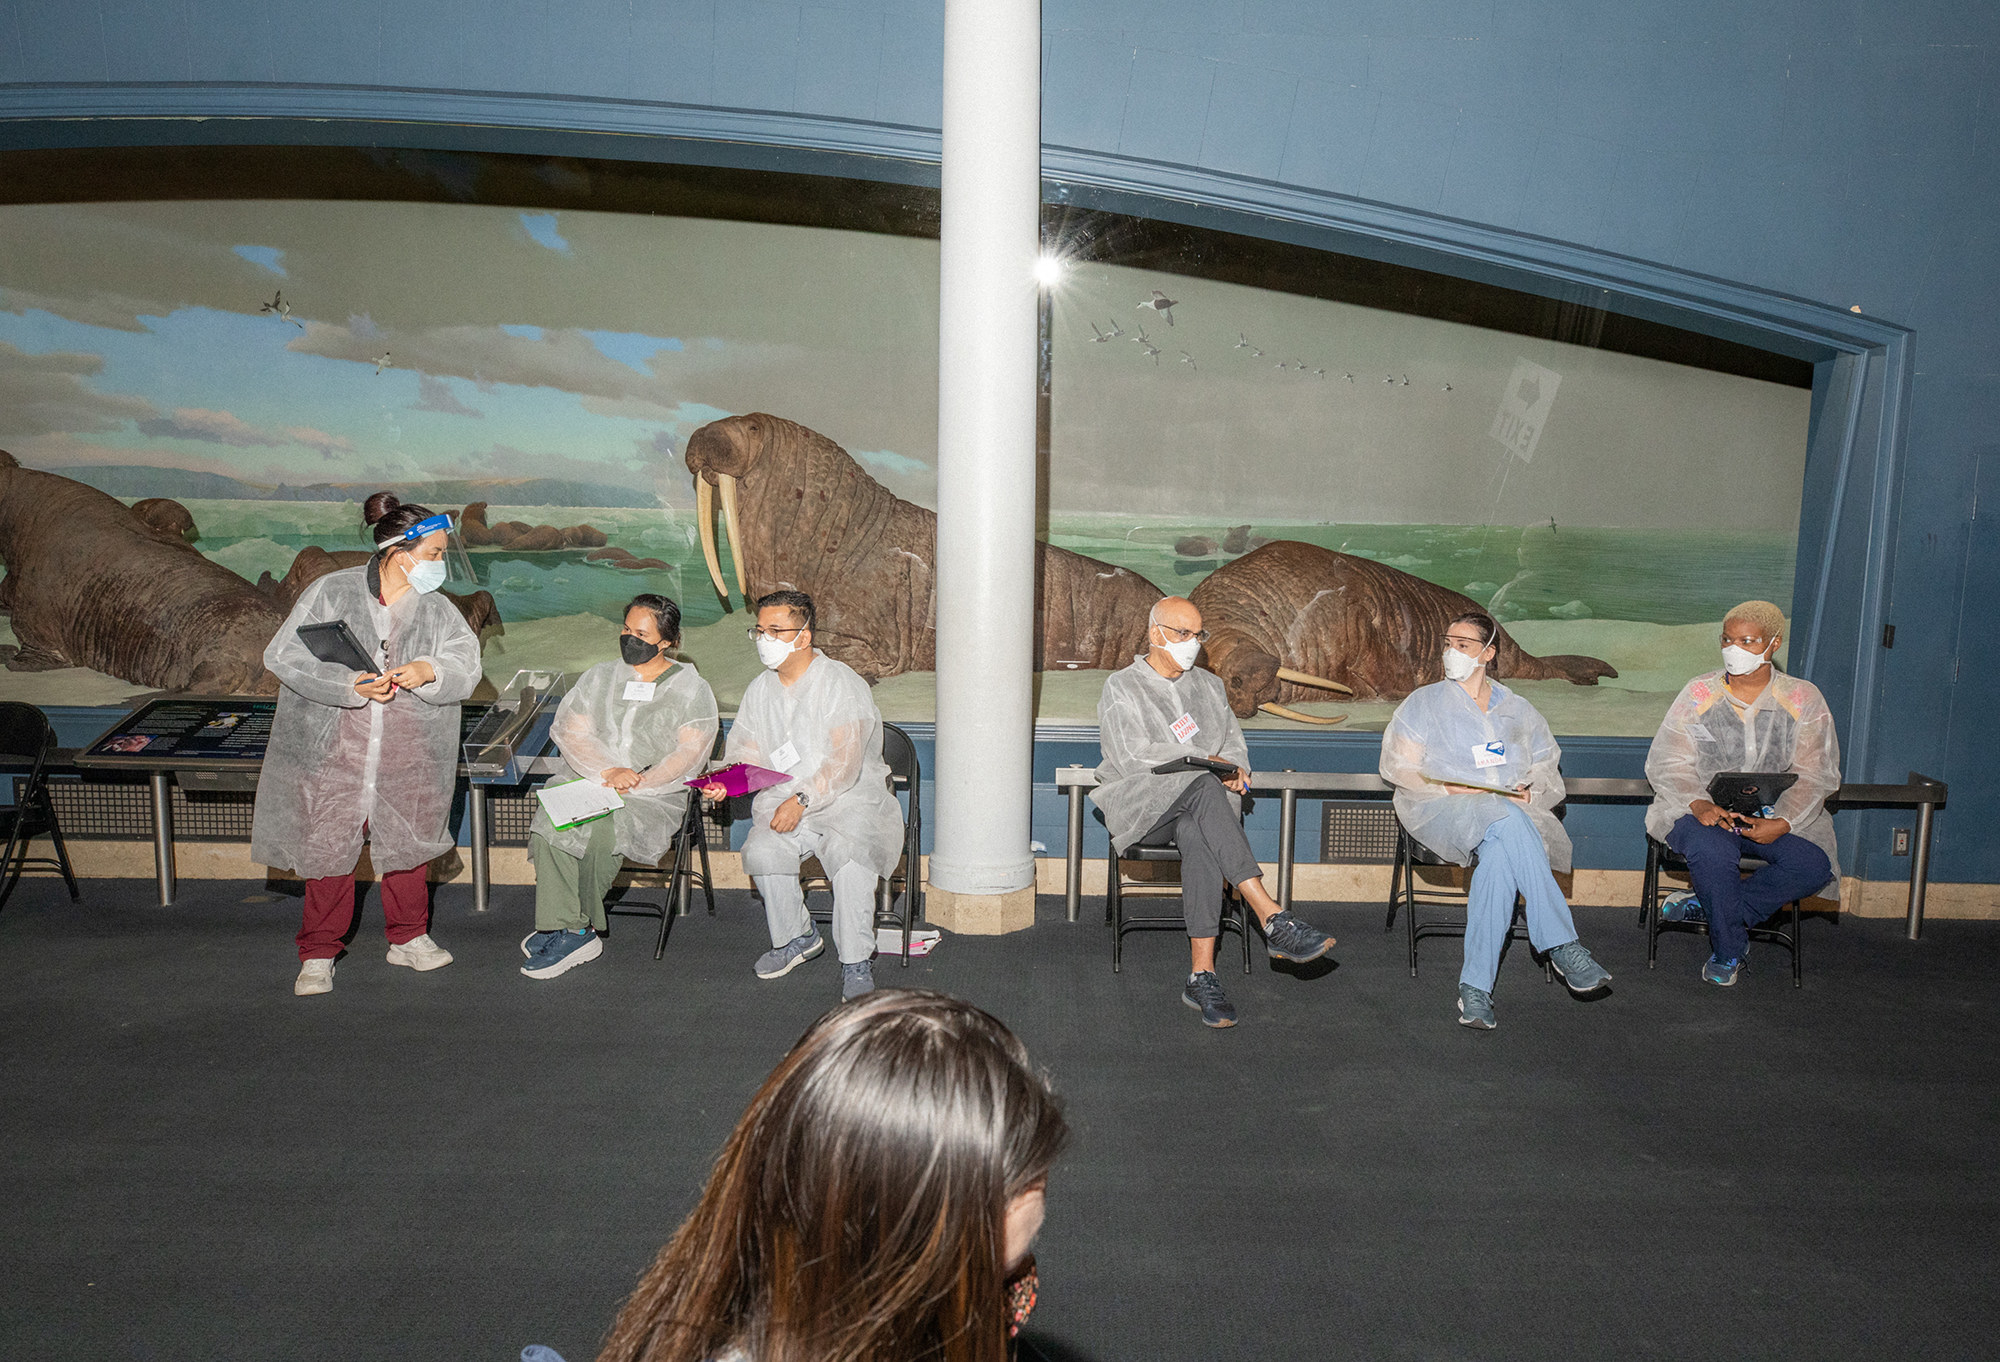 Nurses wearing face masks and face shields chat in front of models of walruses at a museum